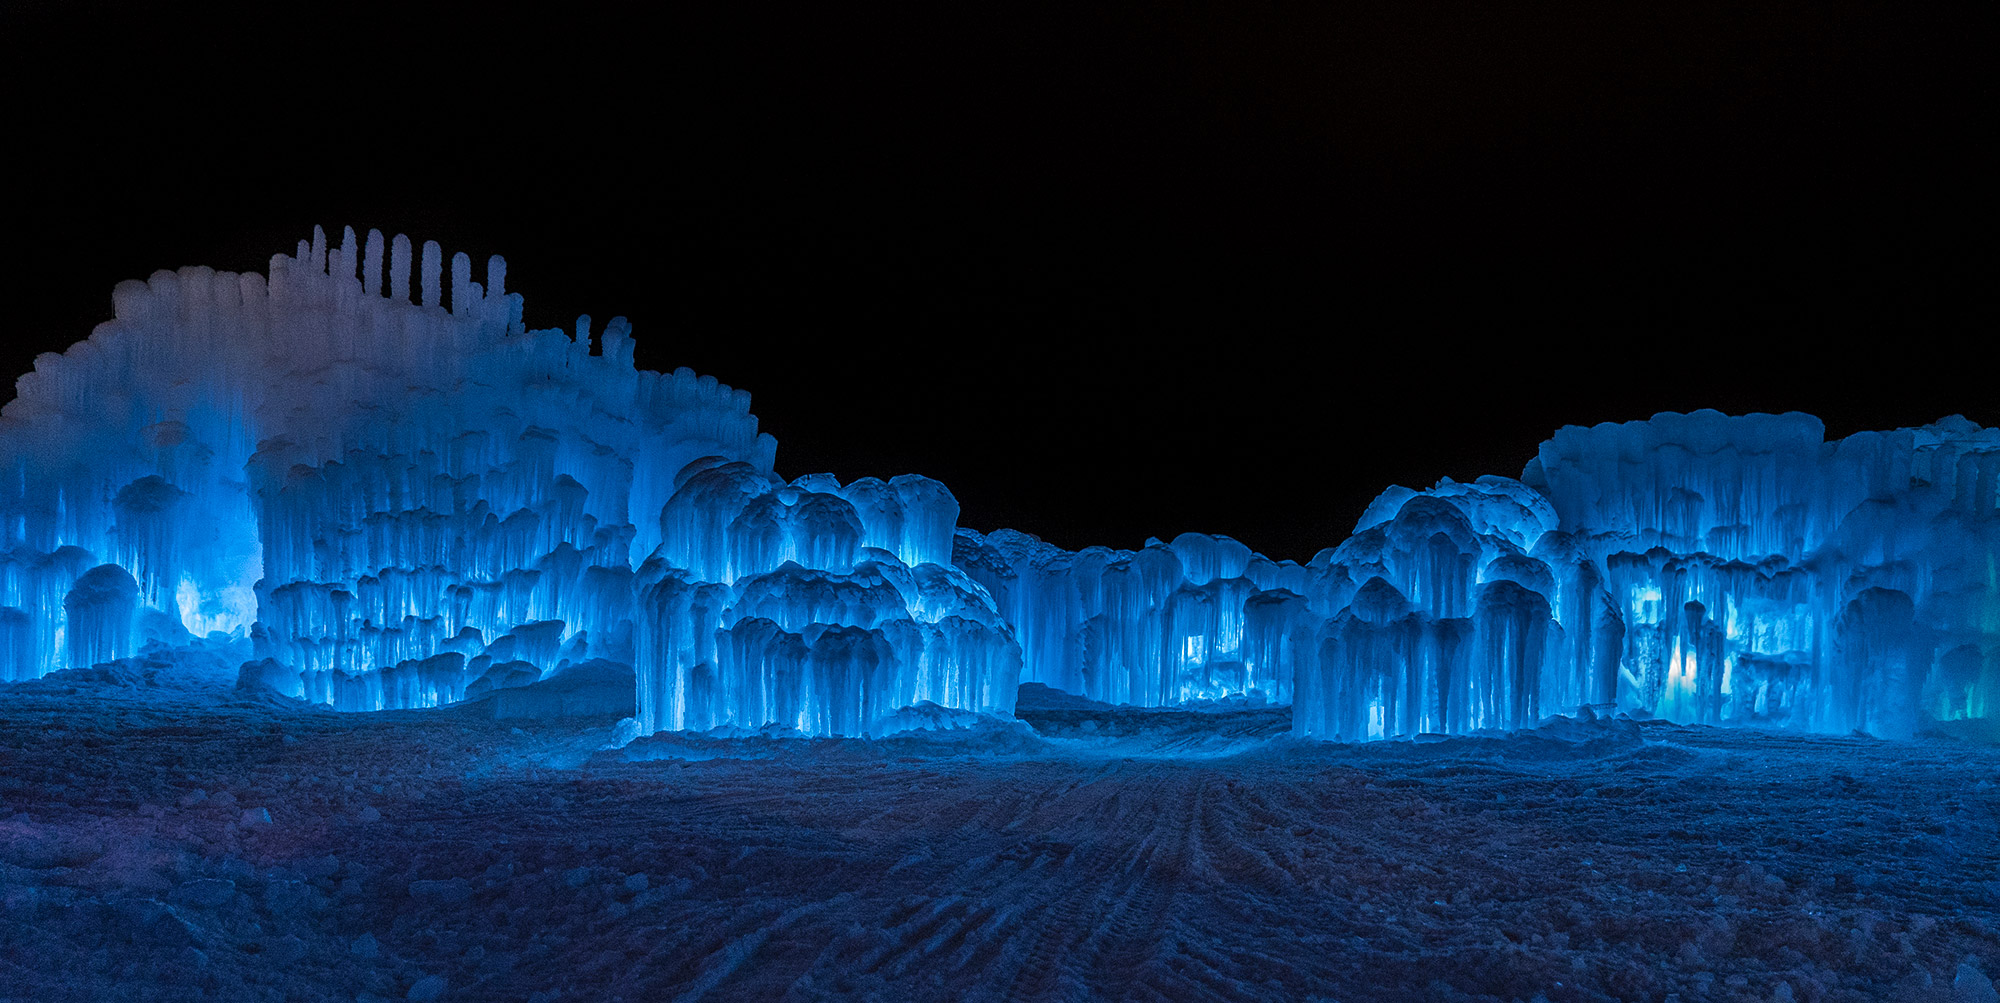 Courtesy: The Ice Castles